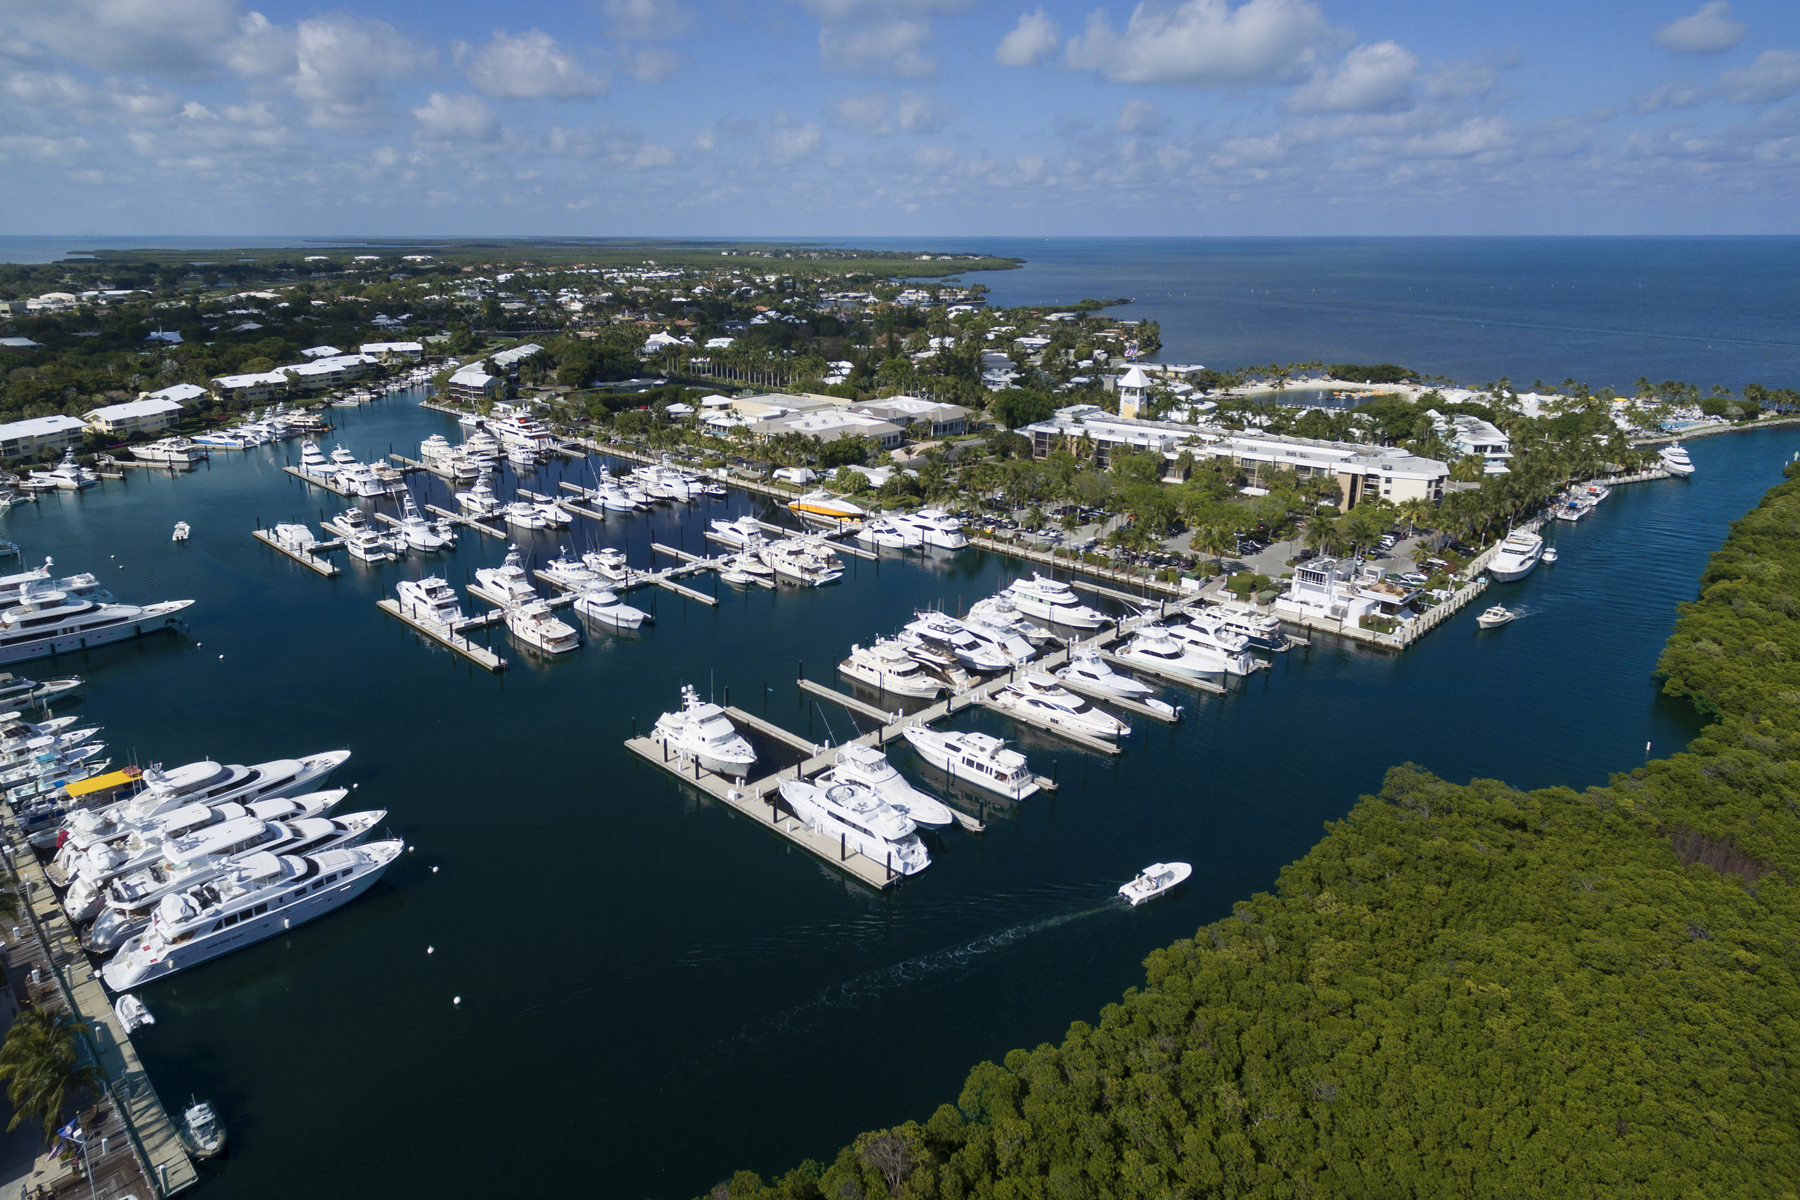 Additional photo for property listing at Ocean Reef Marina Offers Full Yacht Services 201 Ocean Reef Drive, DS-21 Key Largo, Florida 33037 Estados Unidos